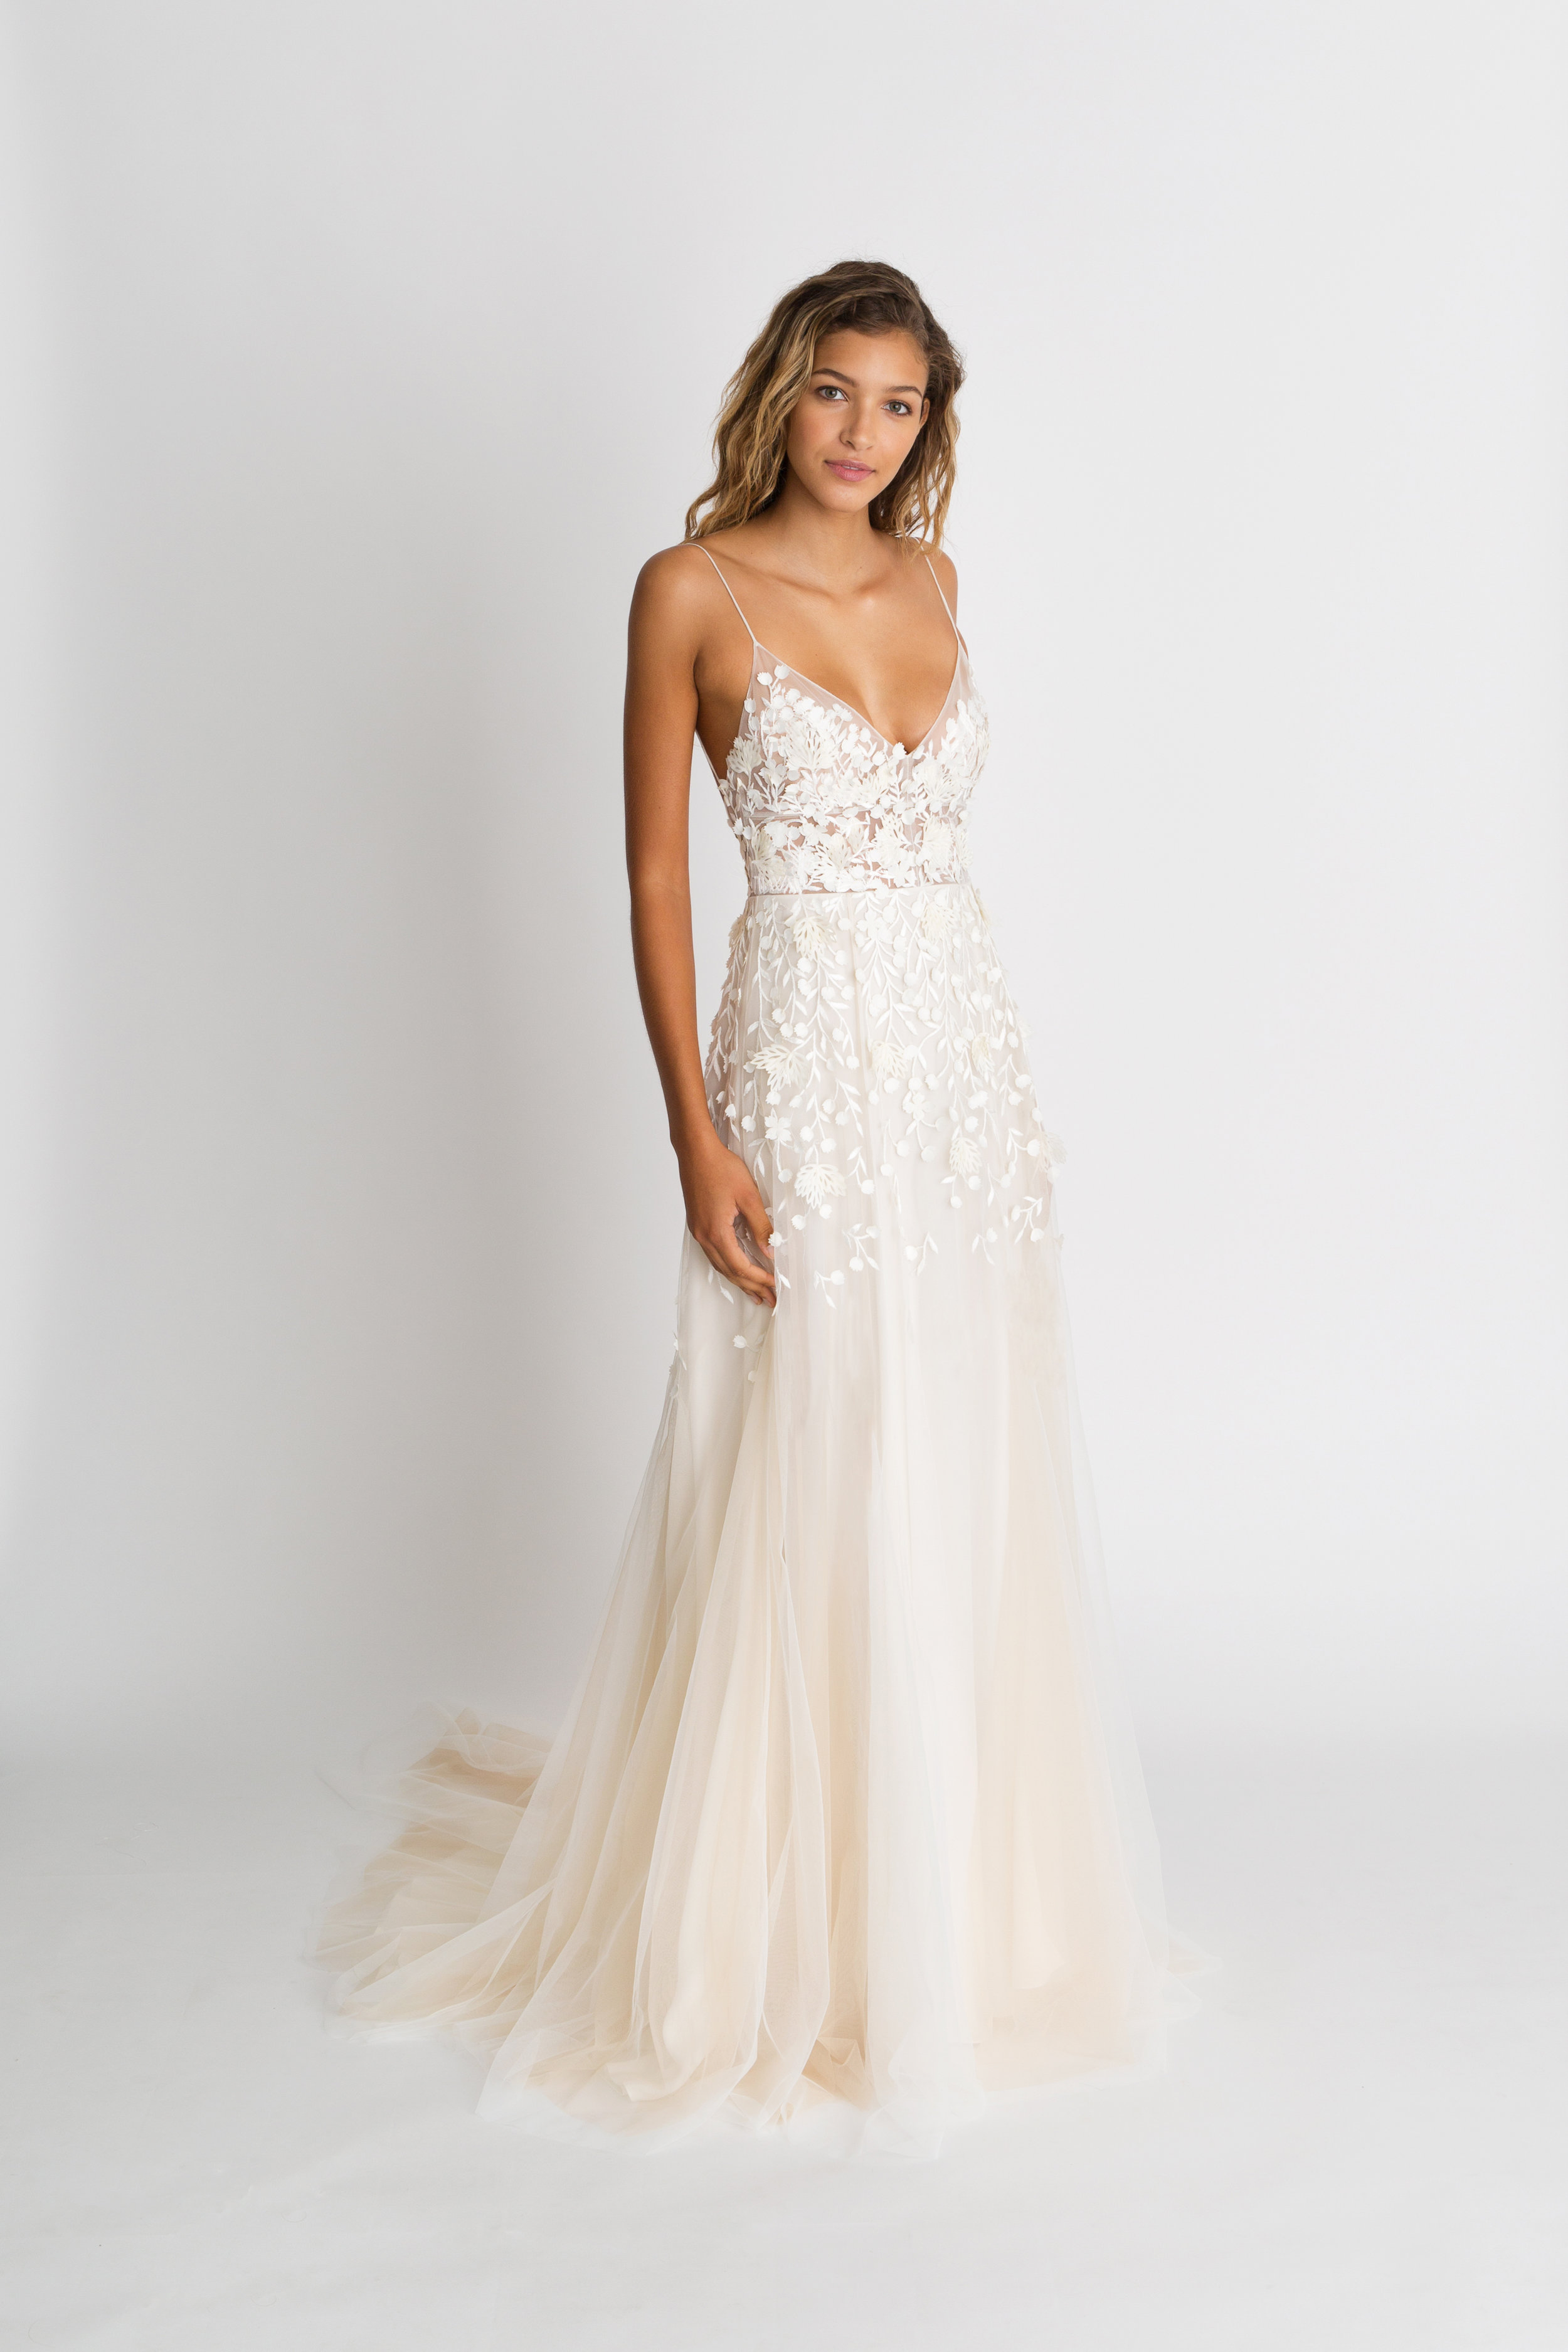 - 'LANA' GOWN